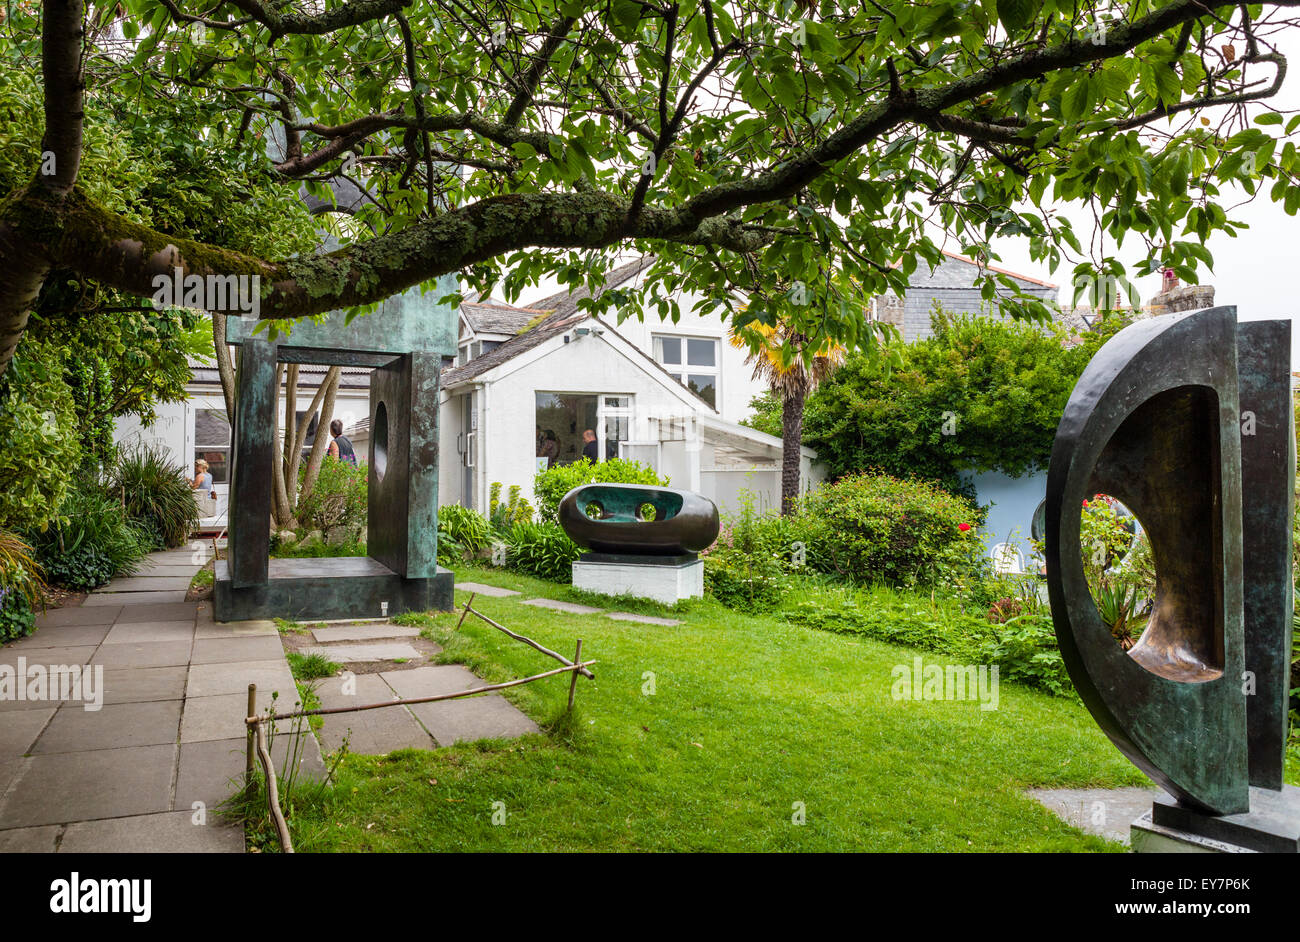 The sculpture garden at the Barbara Hepworth Museum and Sculpture Garden, St Ives, Cornwall, England, UK - Stock Image